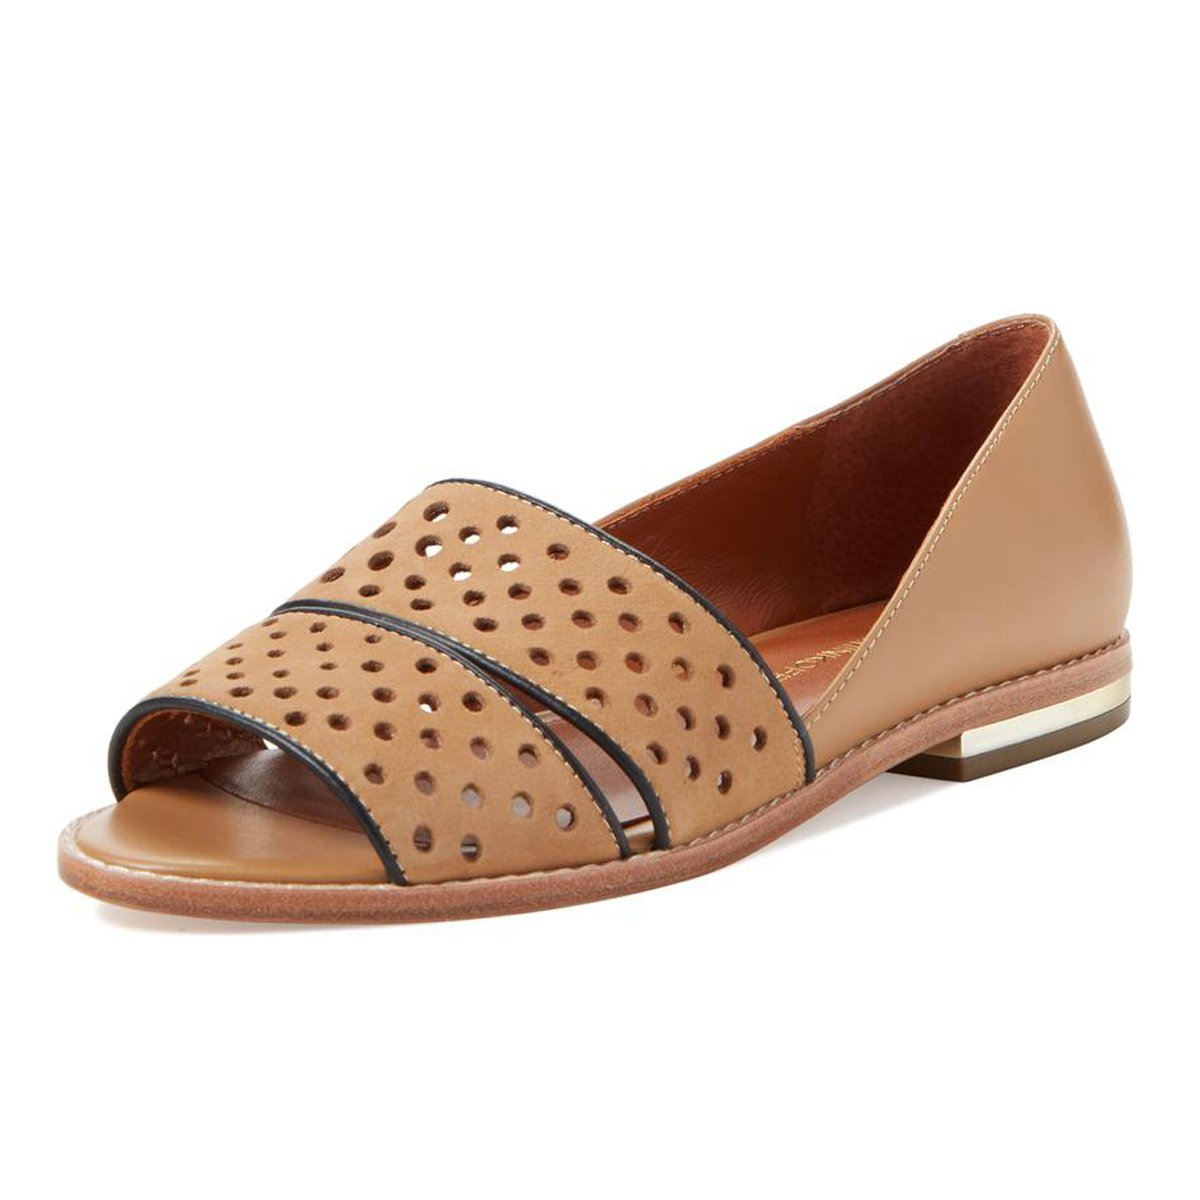 Rebecca Minkoff Women's Sadie Perforated Leather Flats US 6.5 Tan